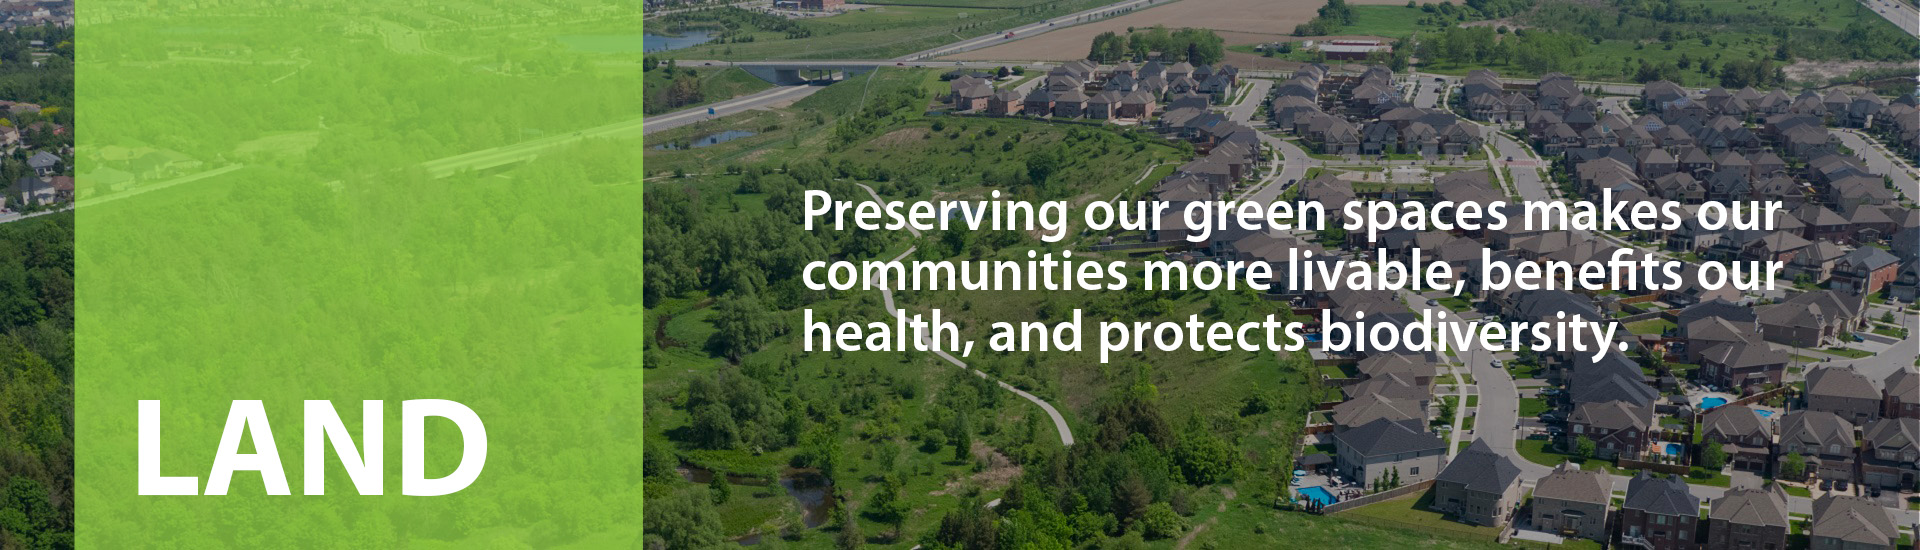 Preserving our green spaces makes our communities more livable, benefits our health, and protects biodiversity